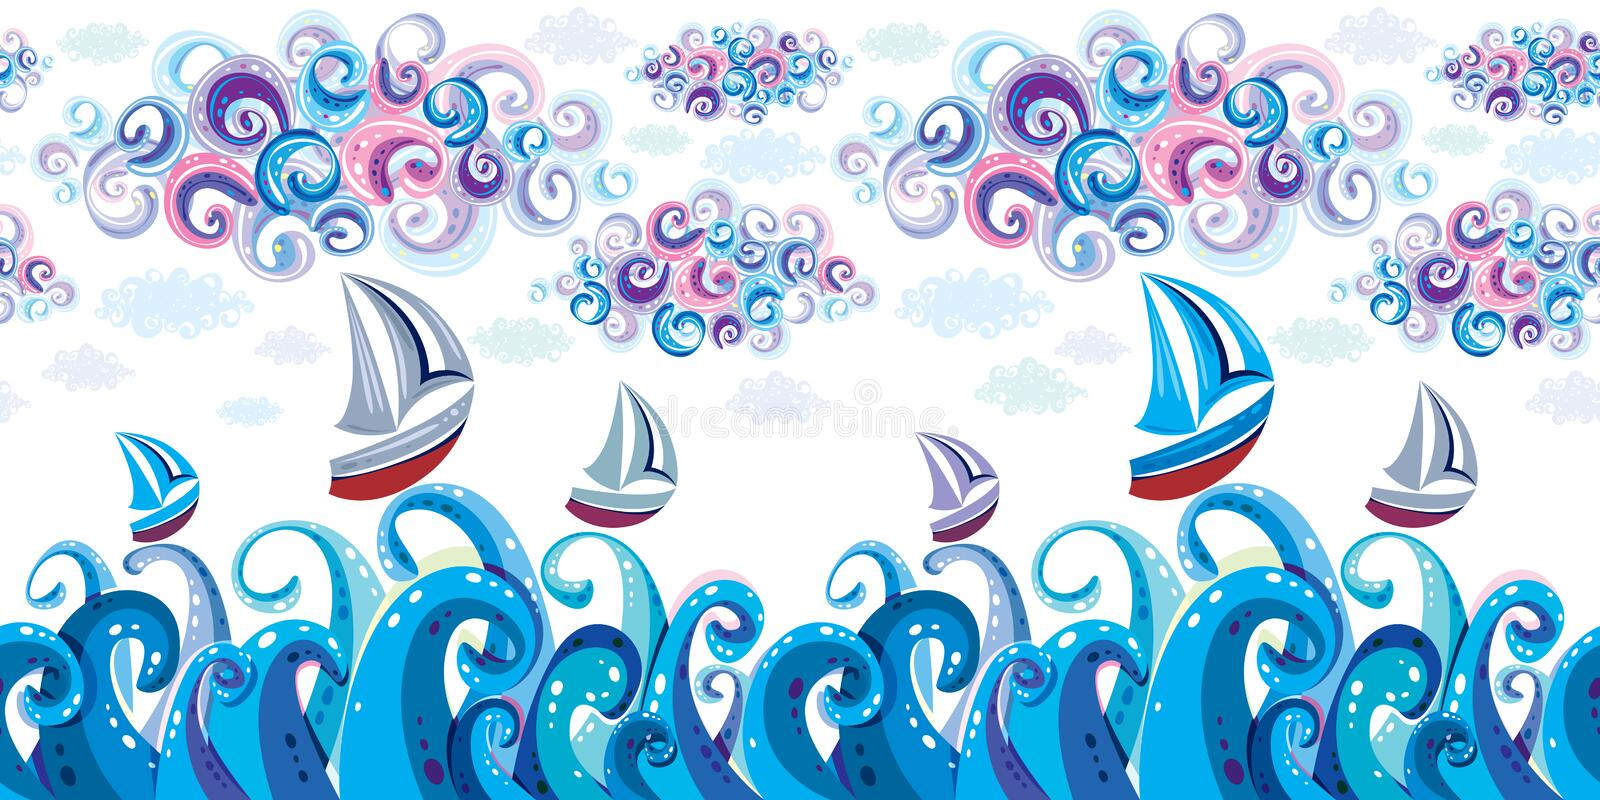 Sea, clouds and yachts on waves. vector illustration